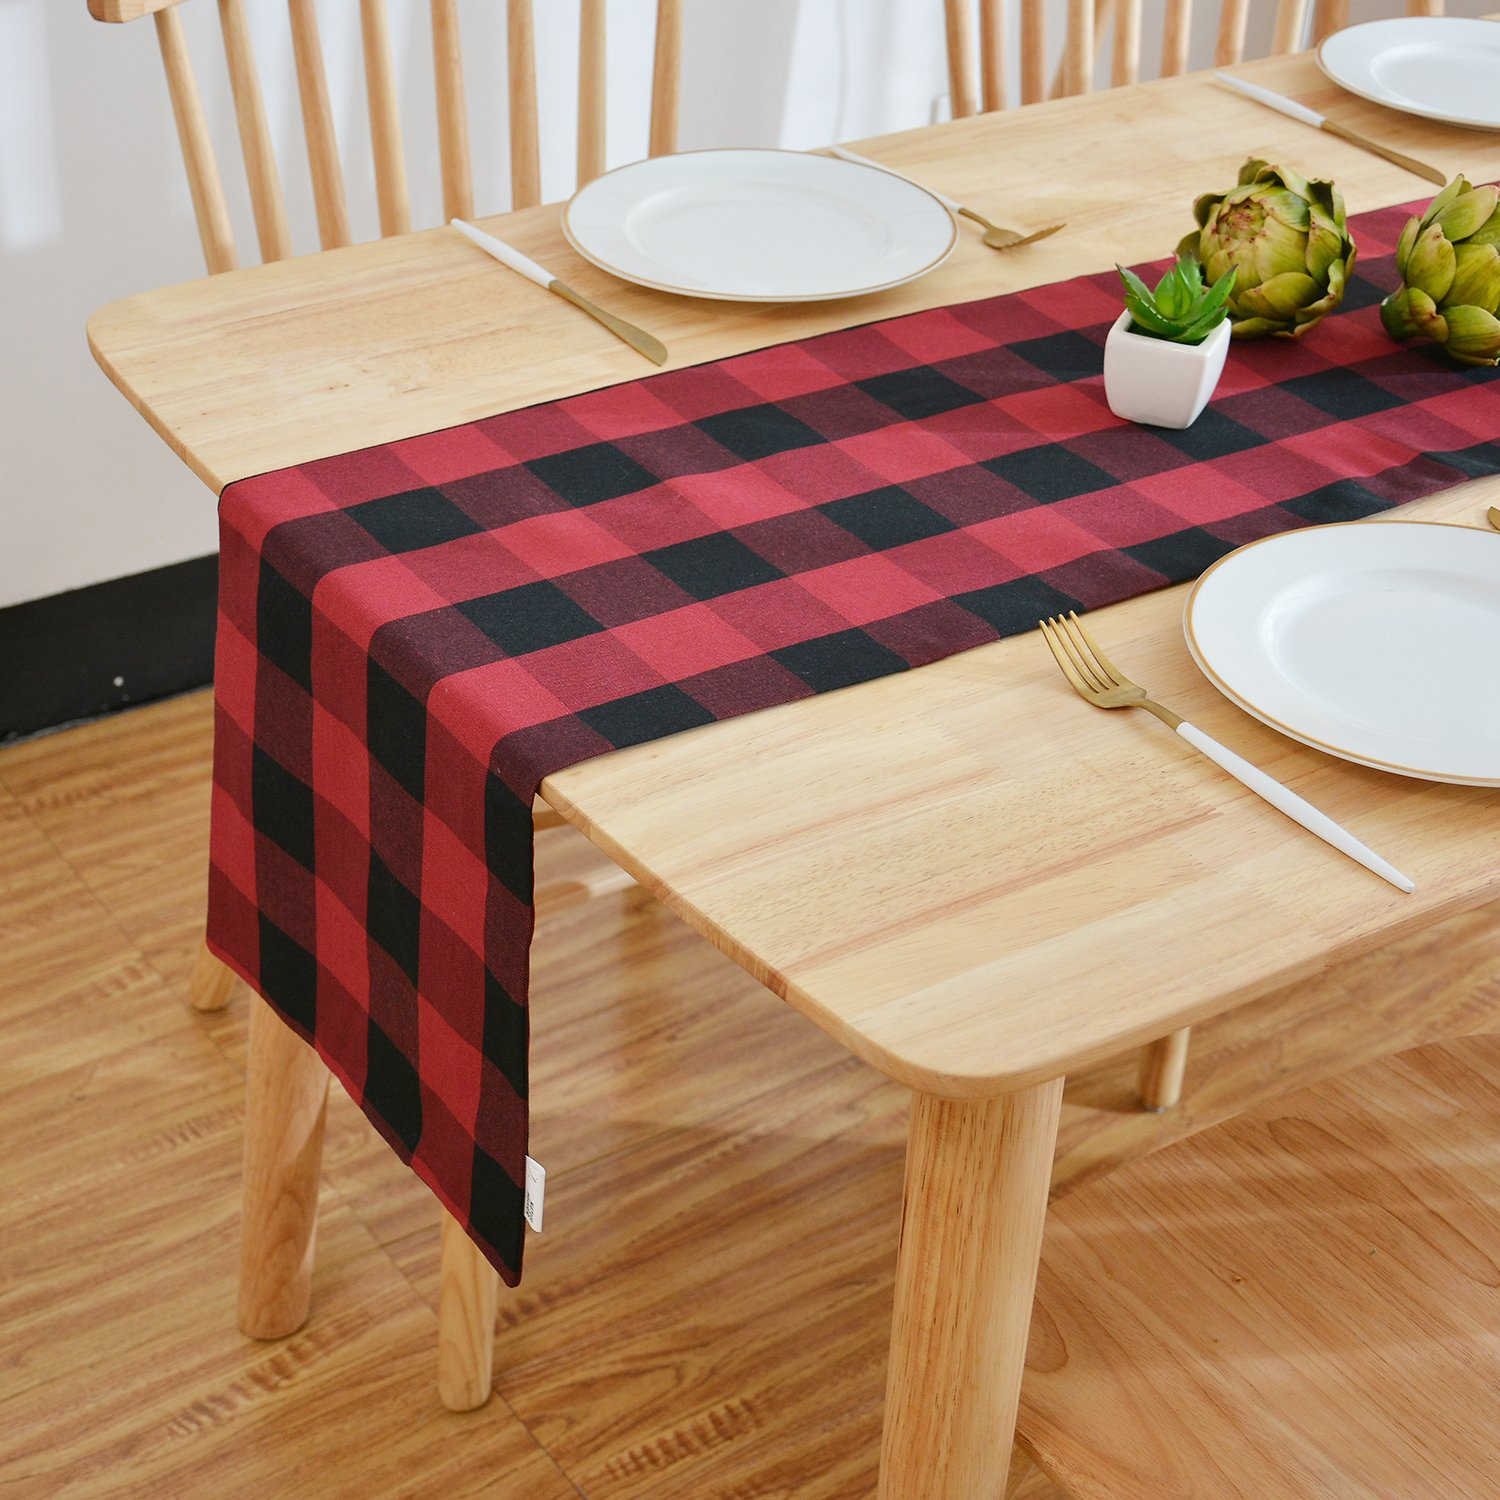 NATUS WEAVER 2 Side Red & Black Buffalo Check Decorative Table Runner for Family Dinners or Gatherings, Indoor or Outdoor Parties, Everyday Use (12 x 72, Seats 4-6 People),